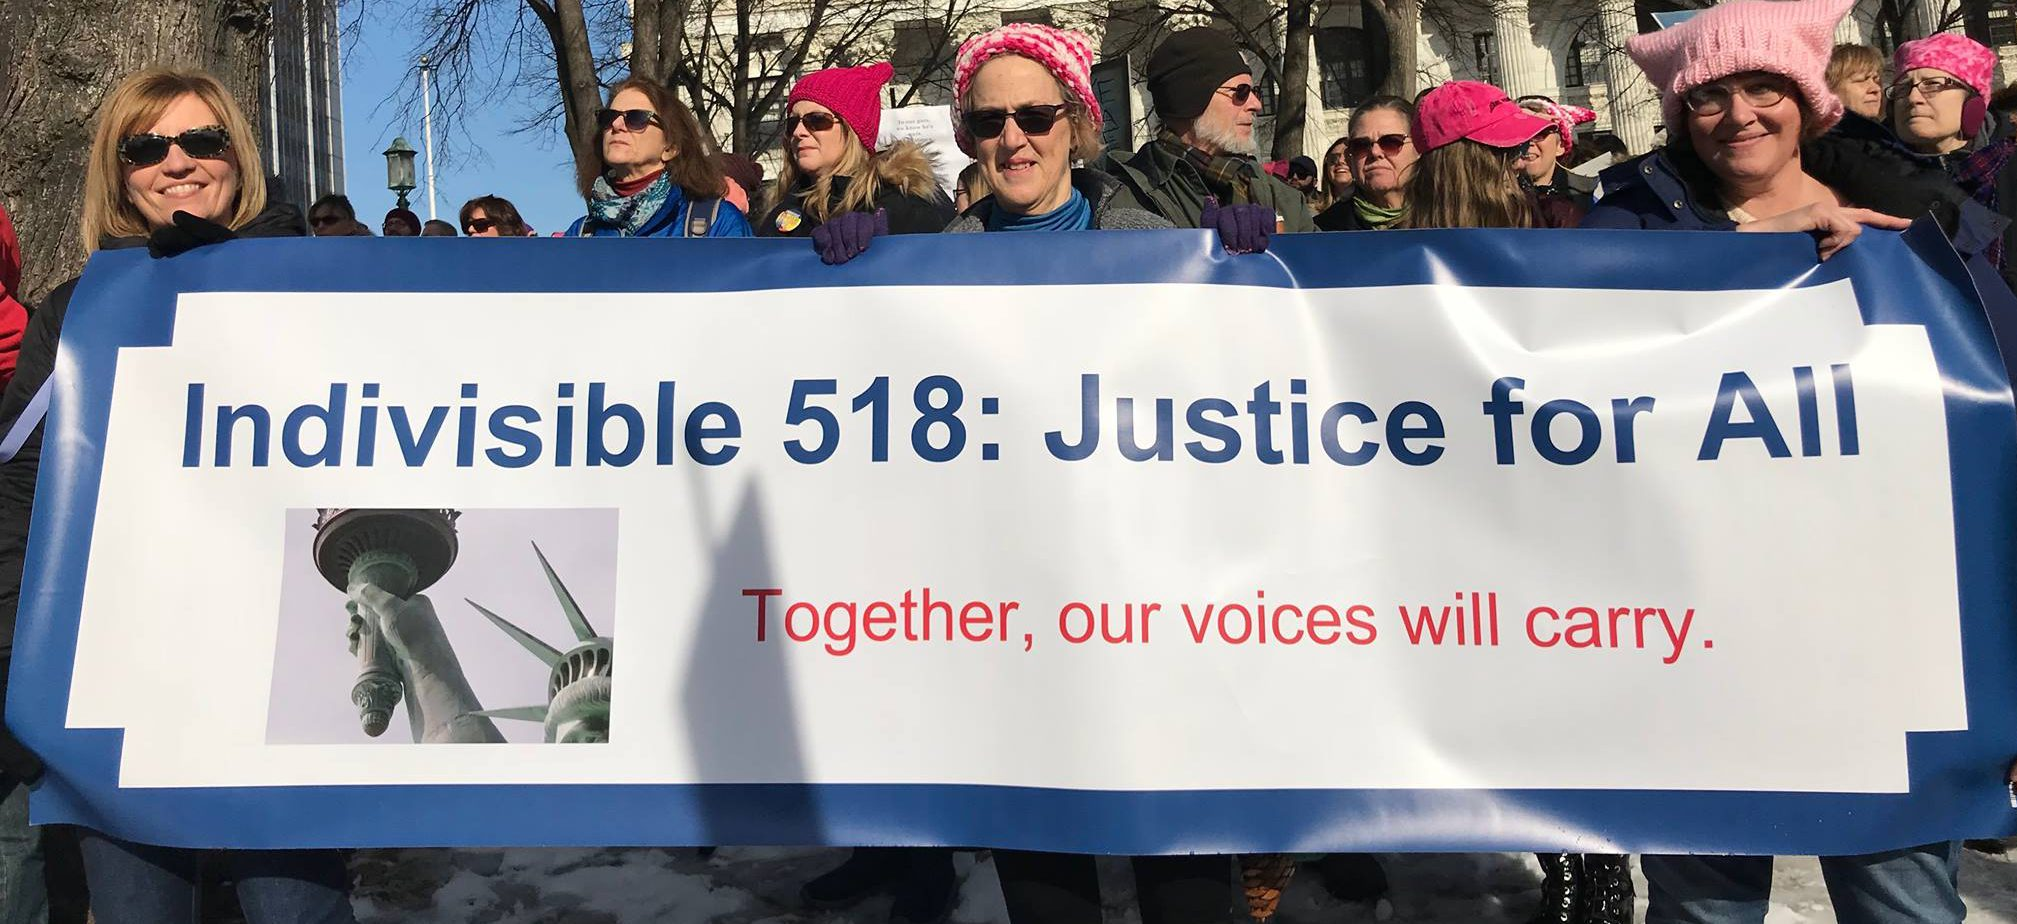 cropped-indivisible518womensmarch.jpg